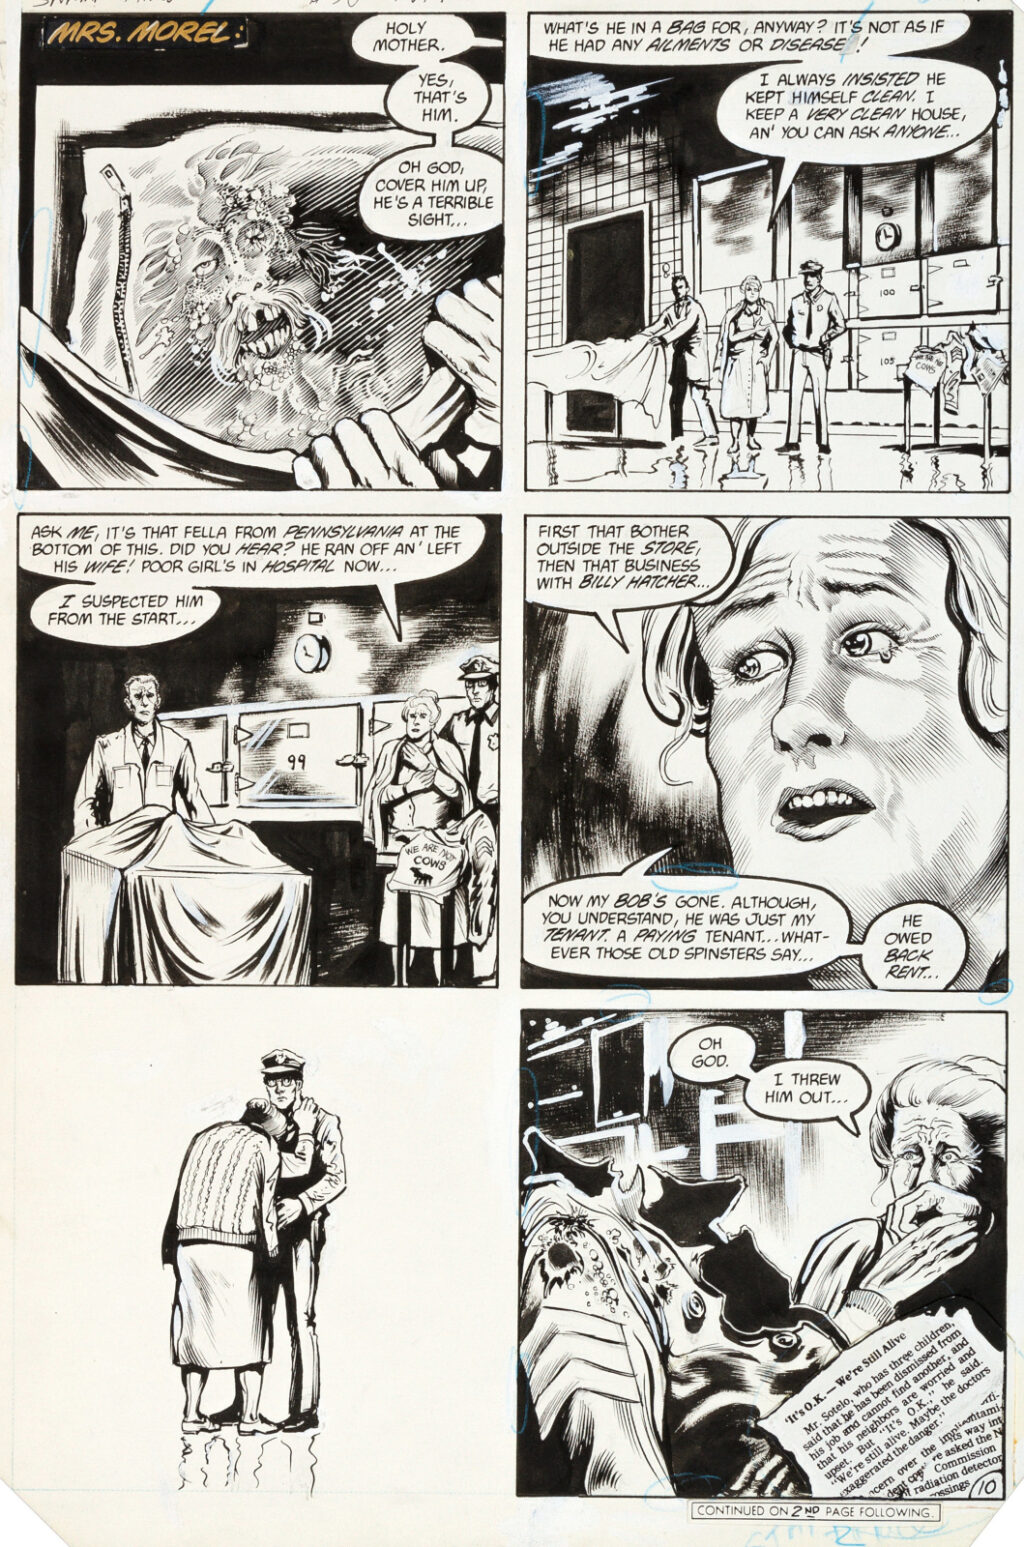 Saga of the Swamp Thing issue 36 page 10 by Stephen Bissette and John Totleben